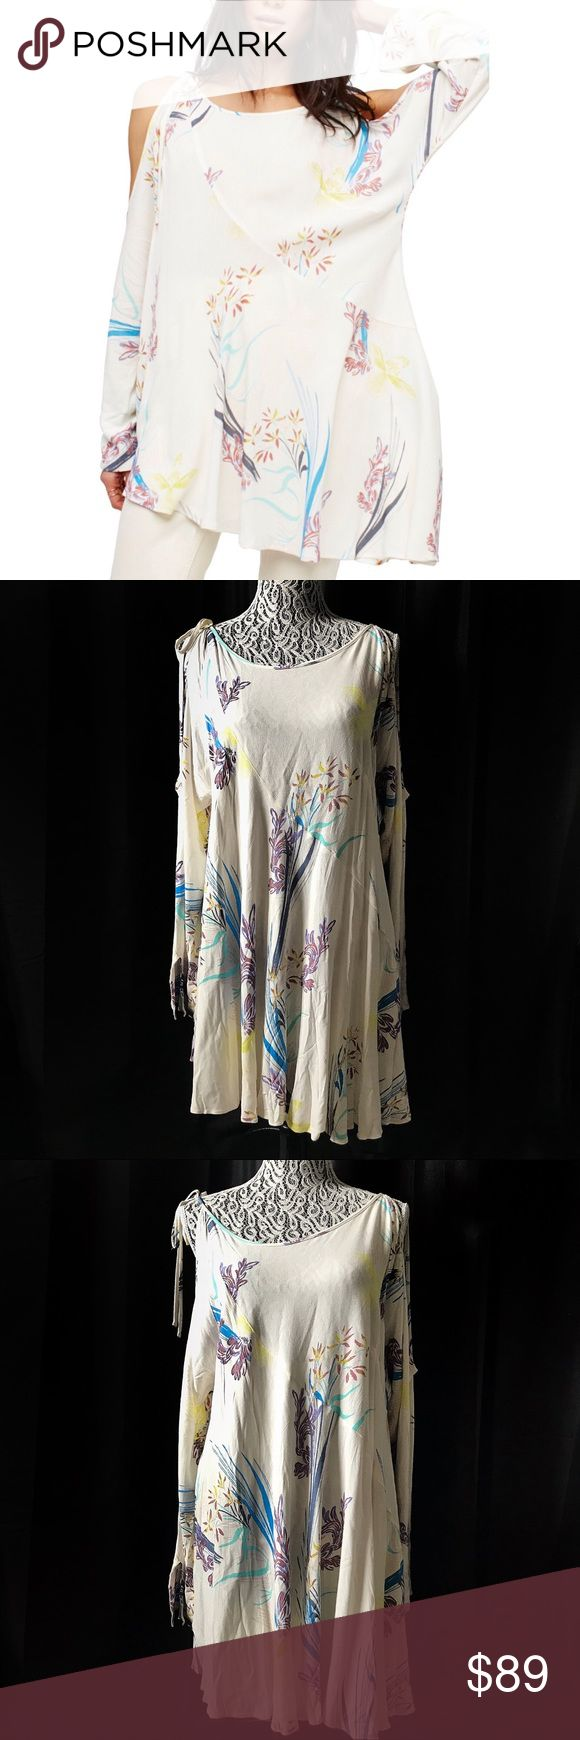 """Free People clear skies cold shoulder tunic small Free People clear skies cold shoulder tunic small  Pit to pit 22"""" Raglan sleeve 28"""" Shoulder 12"""" Length 33""""   Not what you're looking for? Feel free to browse my closet for other occasions: Winter, spring, summer, fall, birthday, New Year's Eve, Valentine's Day date, Graduation, Prom, Purim, St. Patrick's Day, Easter, Earth Day, Cinco de Mayo, Mother's Day, EDC, Coachella, Memorial Day, Comic Con, 4th of July, Labor Day, Thanksgiving…"""